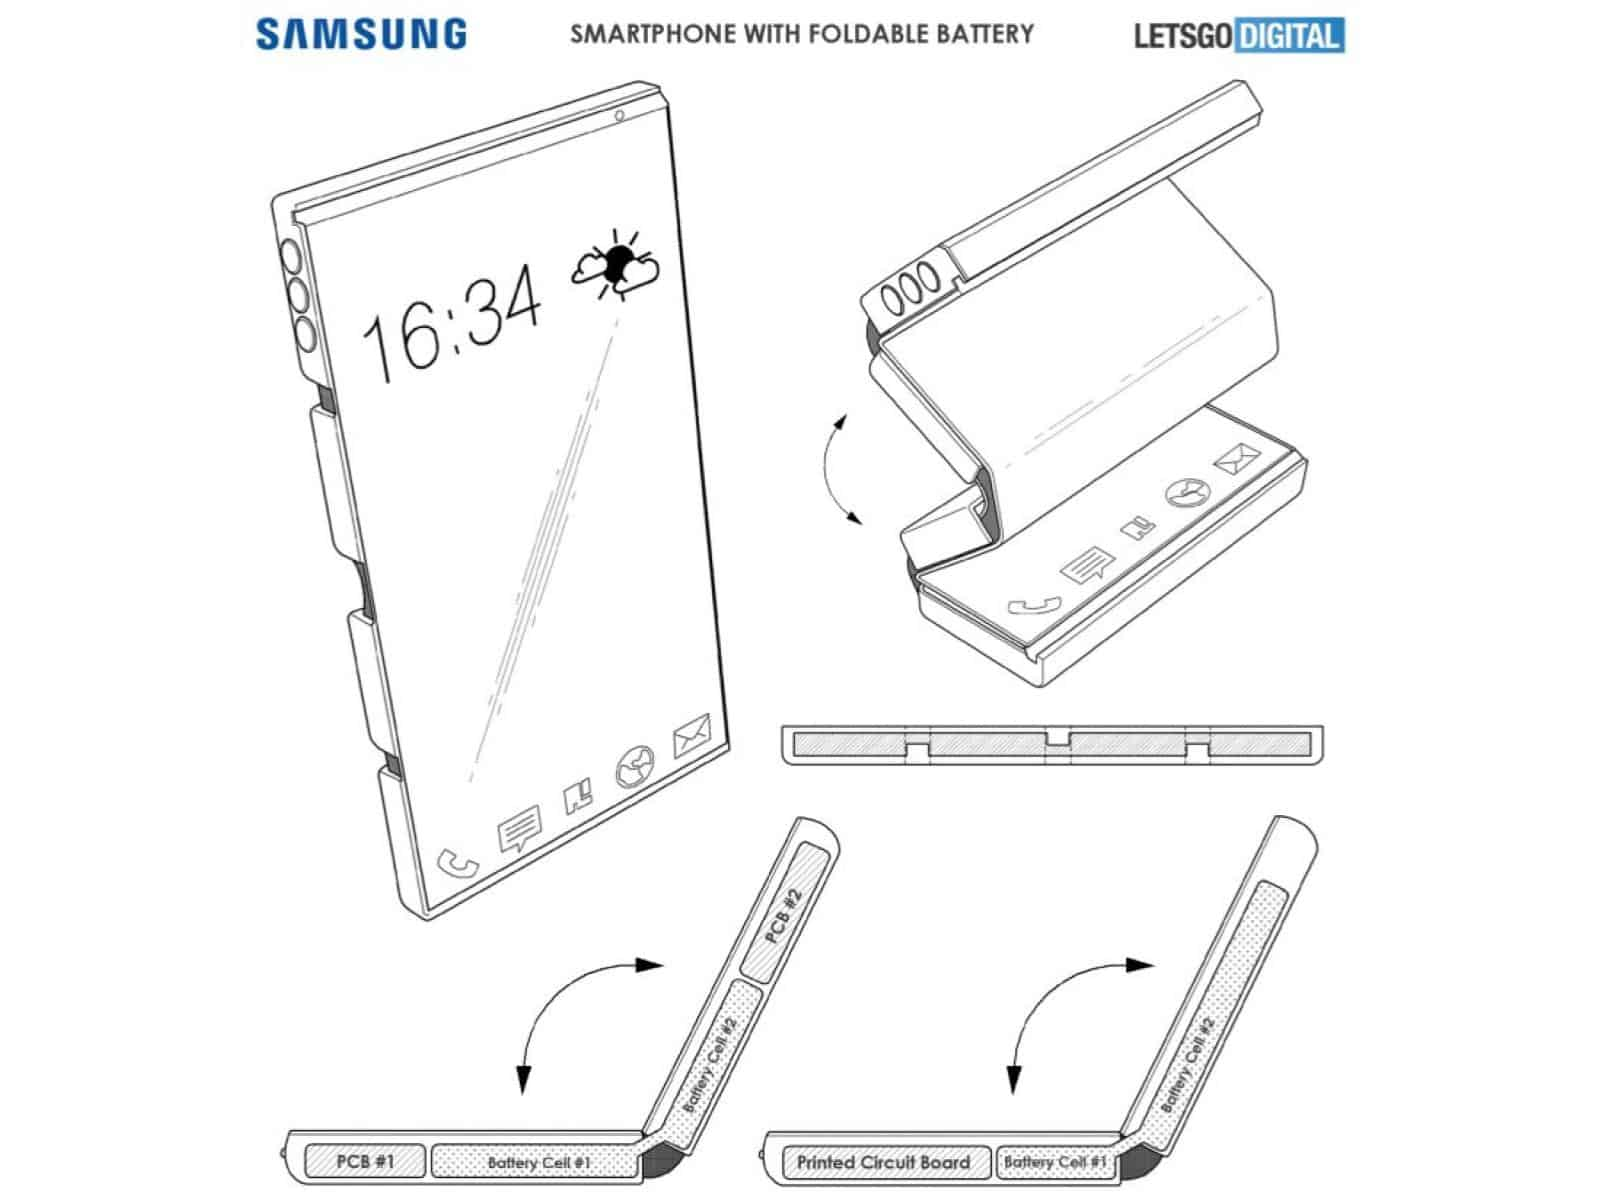 samsung flexible battery smartphones 02 from letsgodigital